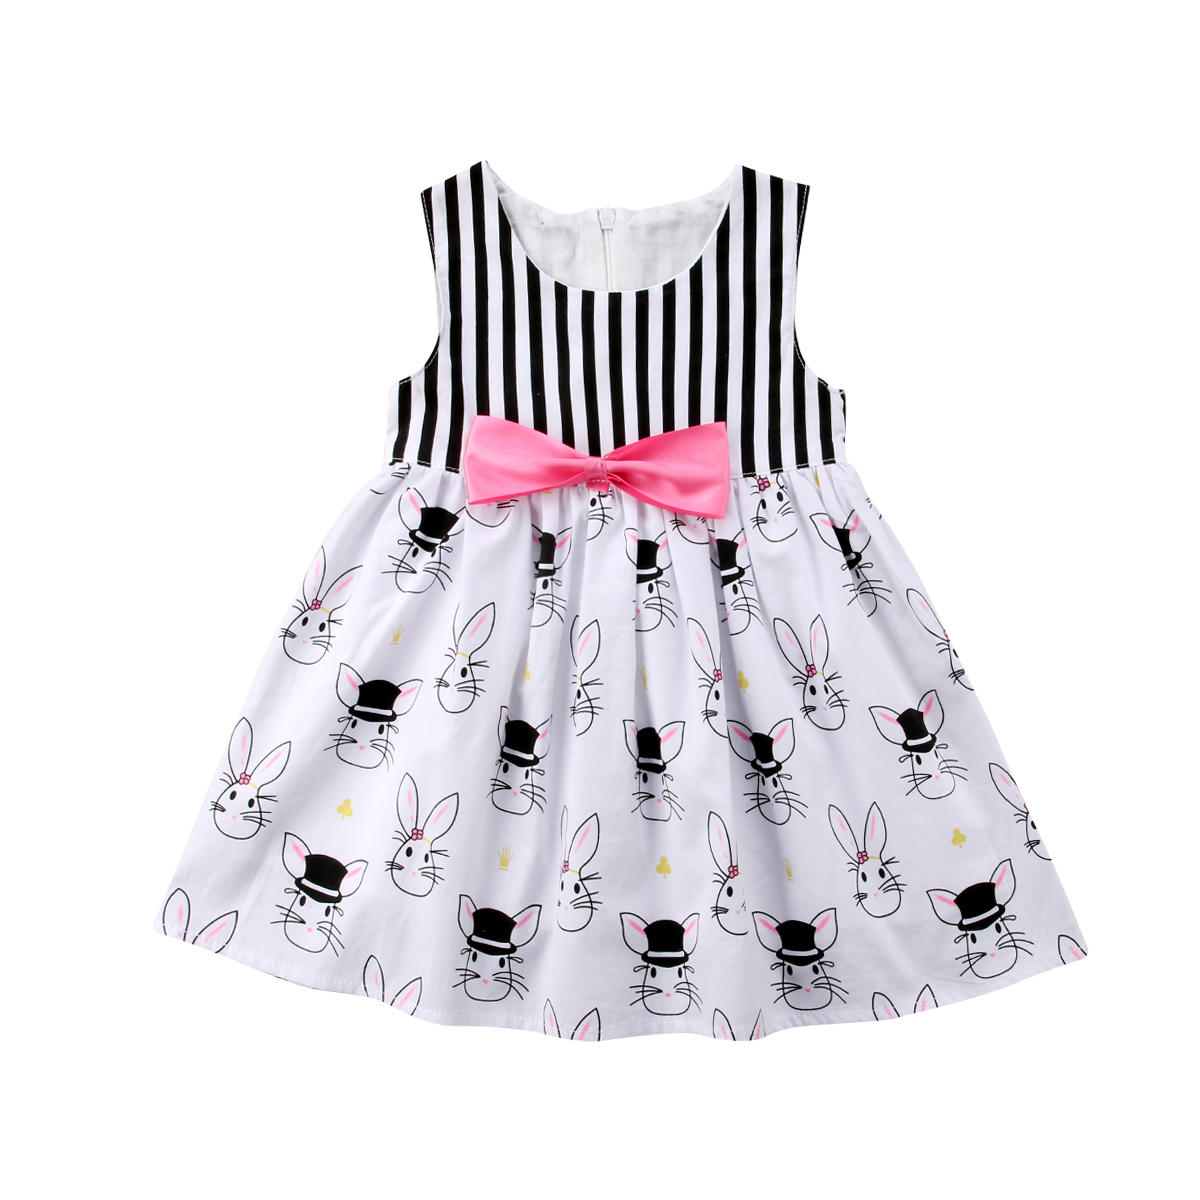 1-5Y Girls Summer Dress 2018 Brand Cartoon Bunny Cotton Baby Dress Princess Costume Children Vestidos Kids Dresses for Girls summer dresses for girls party dress 100% cotton summer cool and refreshing the harness green flowered dress 1 5years old